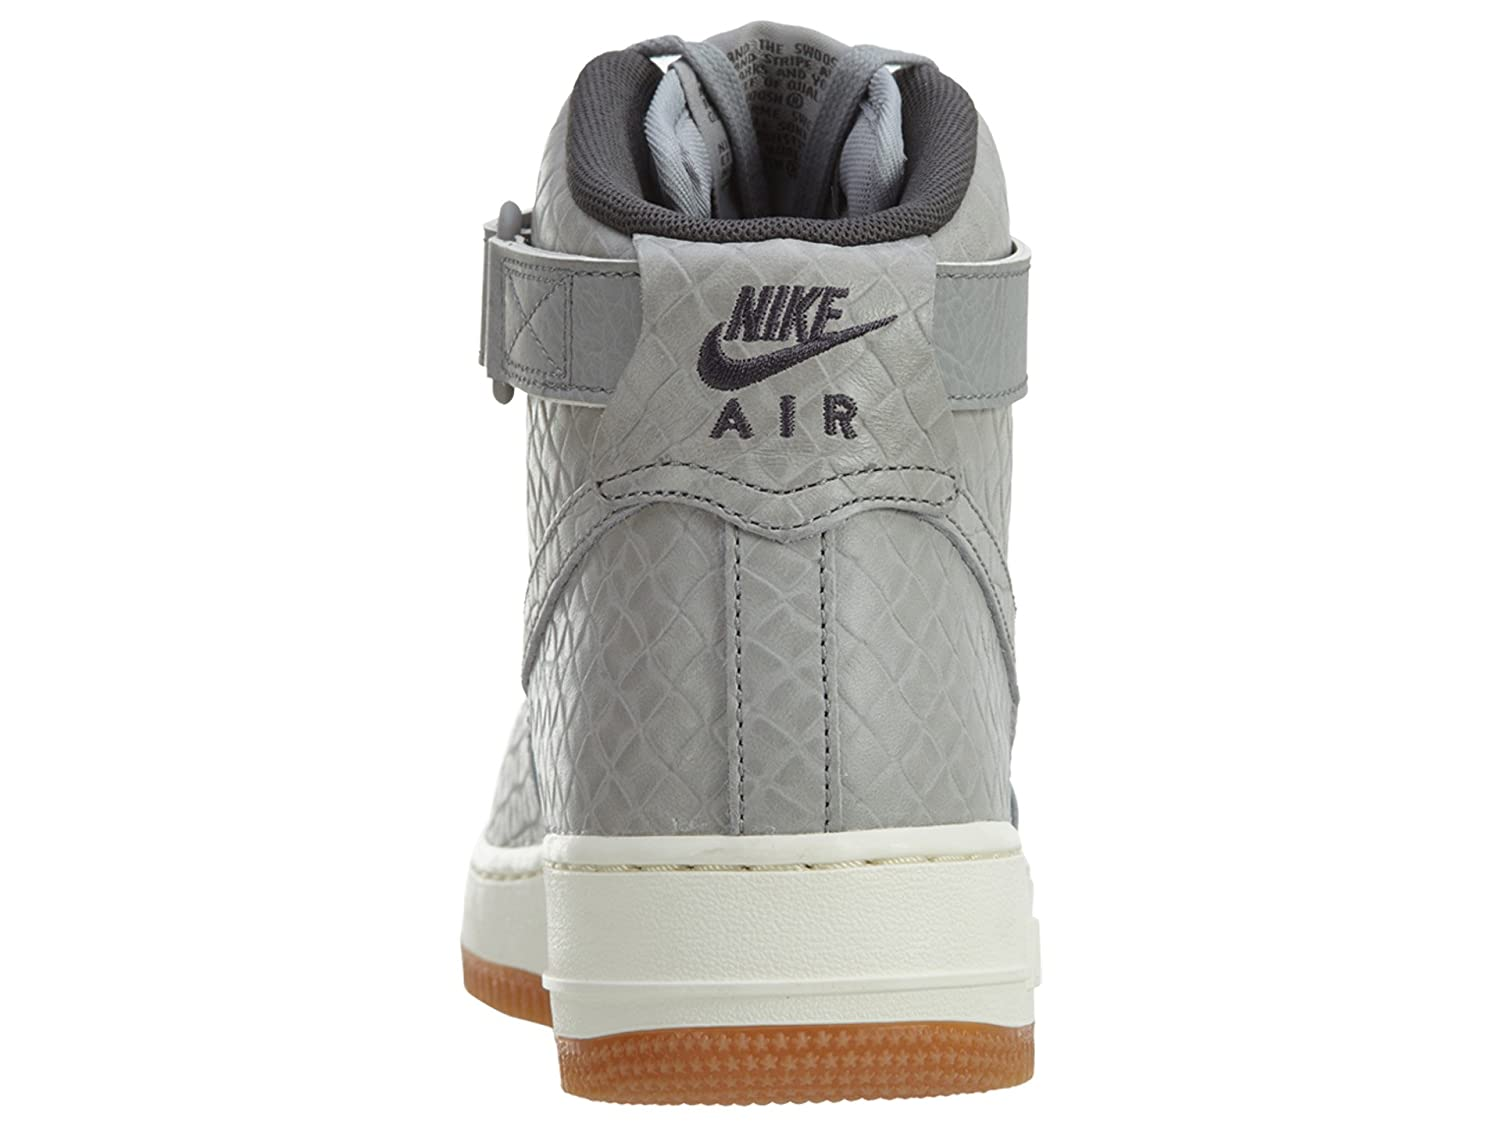 Nike Women's Air Force 1 Hi Premium Black/Black Gum Med Brown Sail Basketball Shoe B005A9BHIK 7 B(M) US|Wolf Grey / Wolf Grey